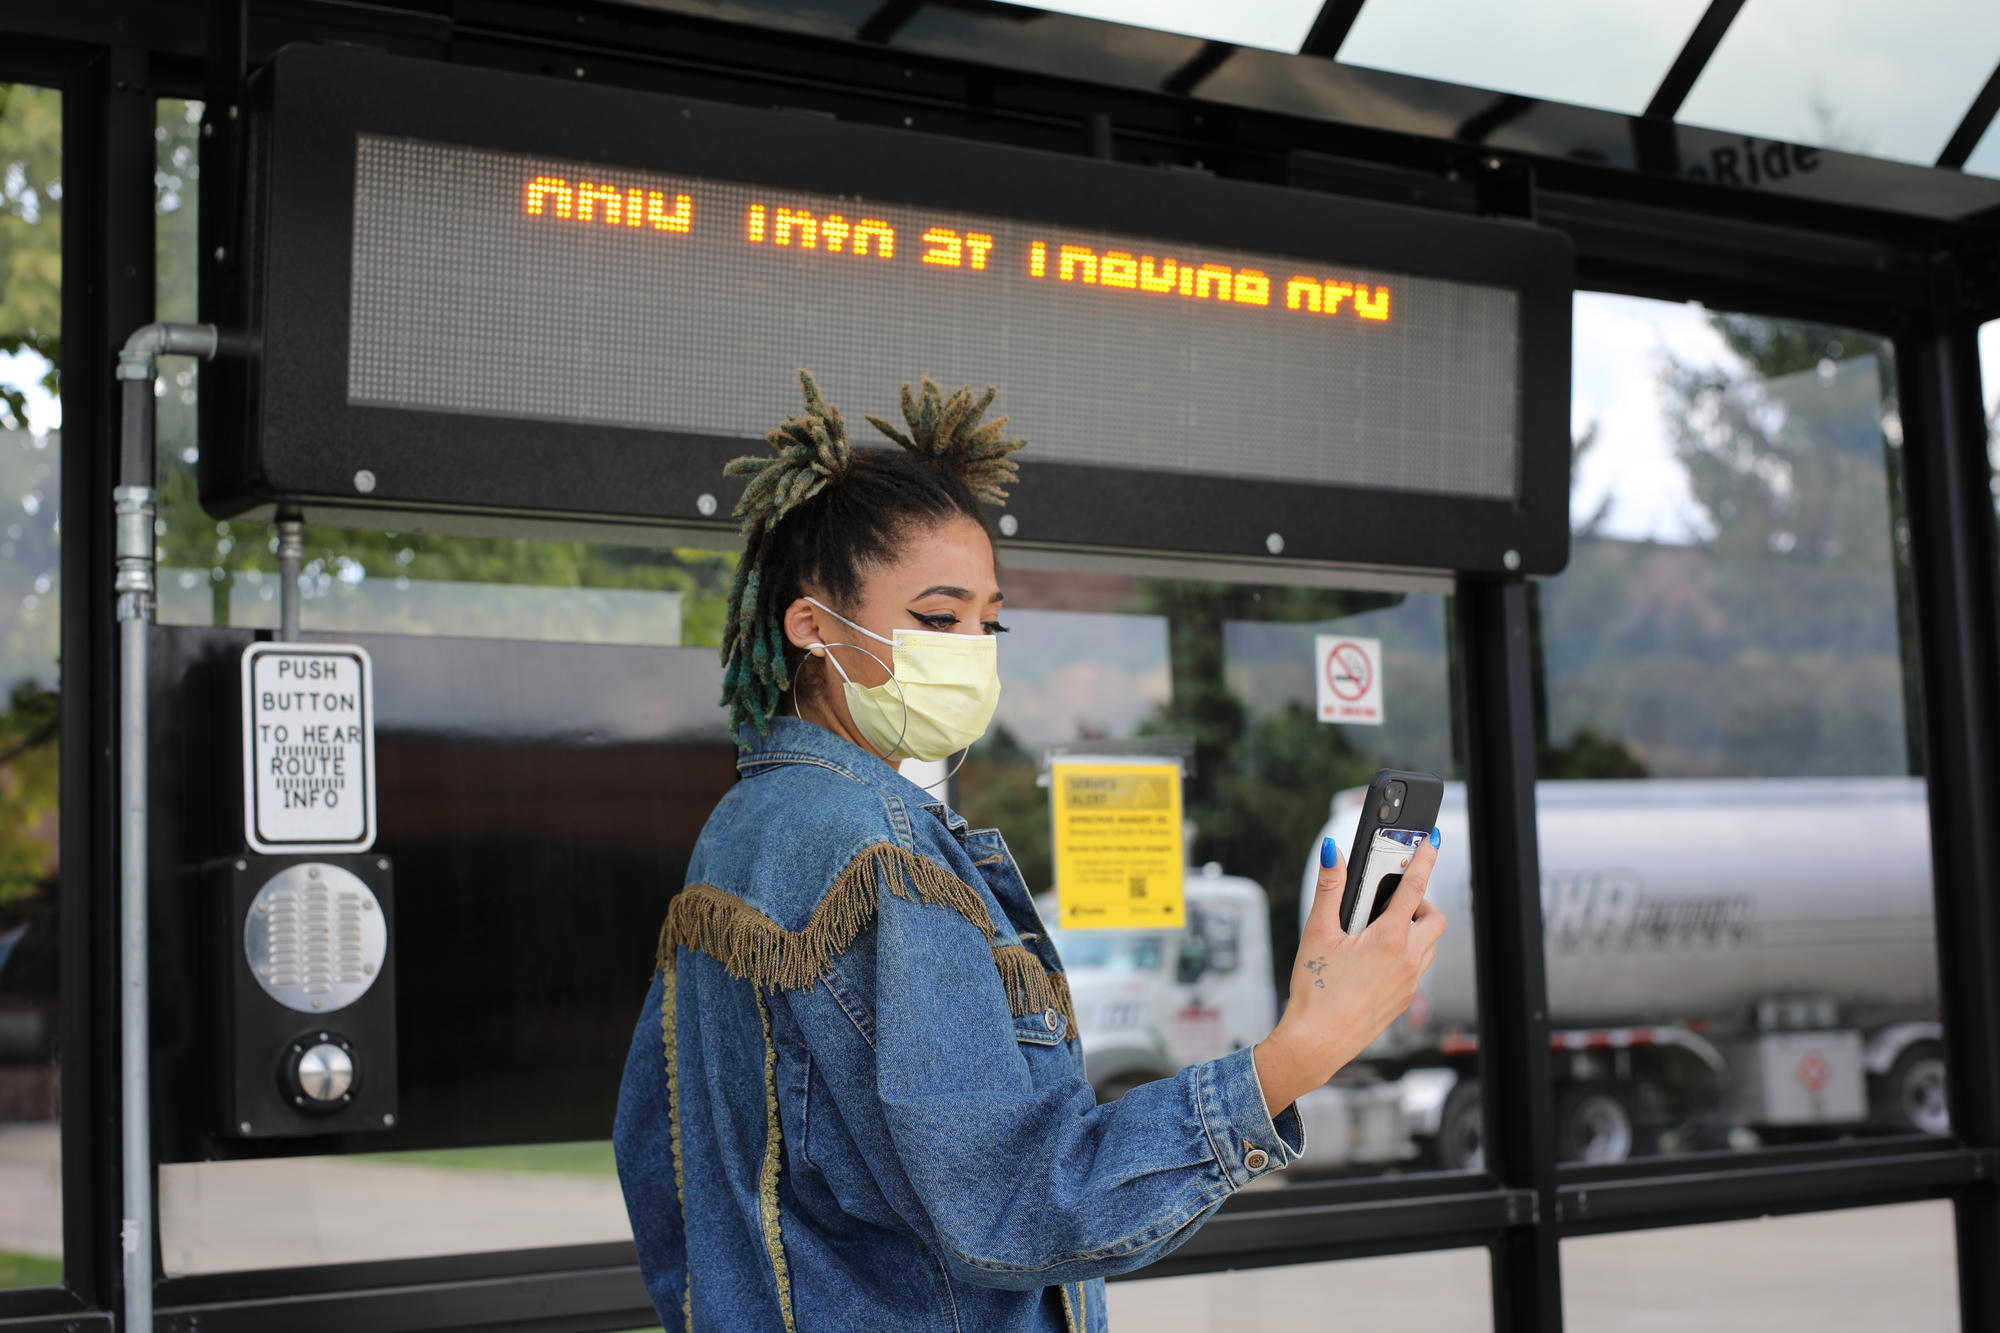 Woman looking at phone at bus stop